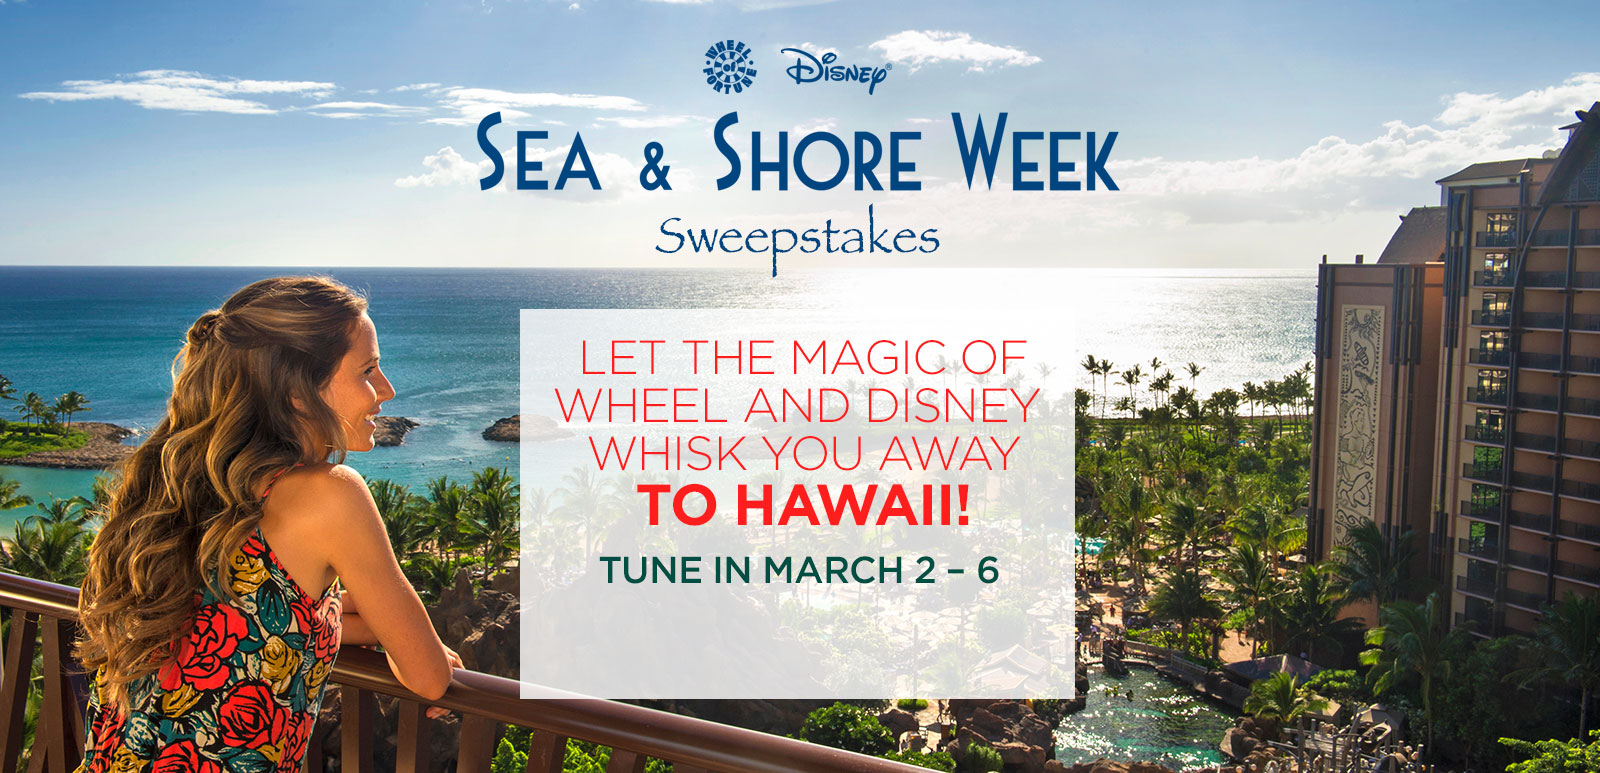 Wheel Of Fortune Sea & Shore Week Aulani 2015